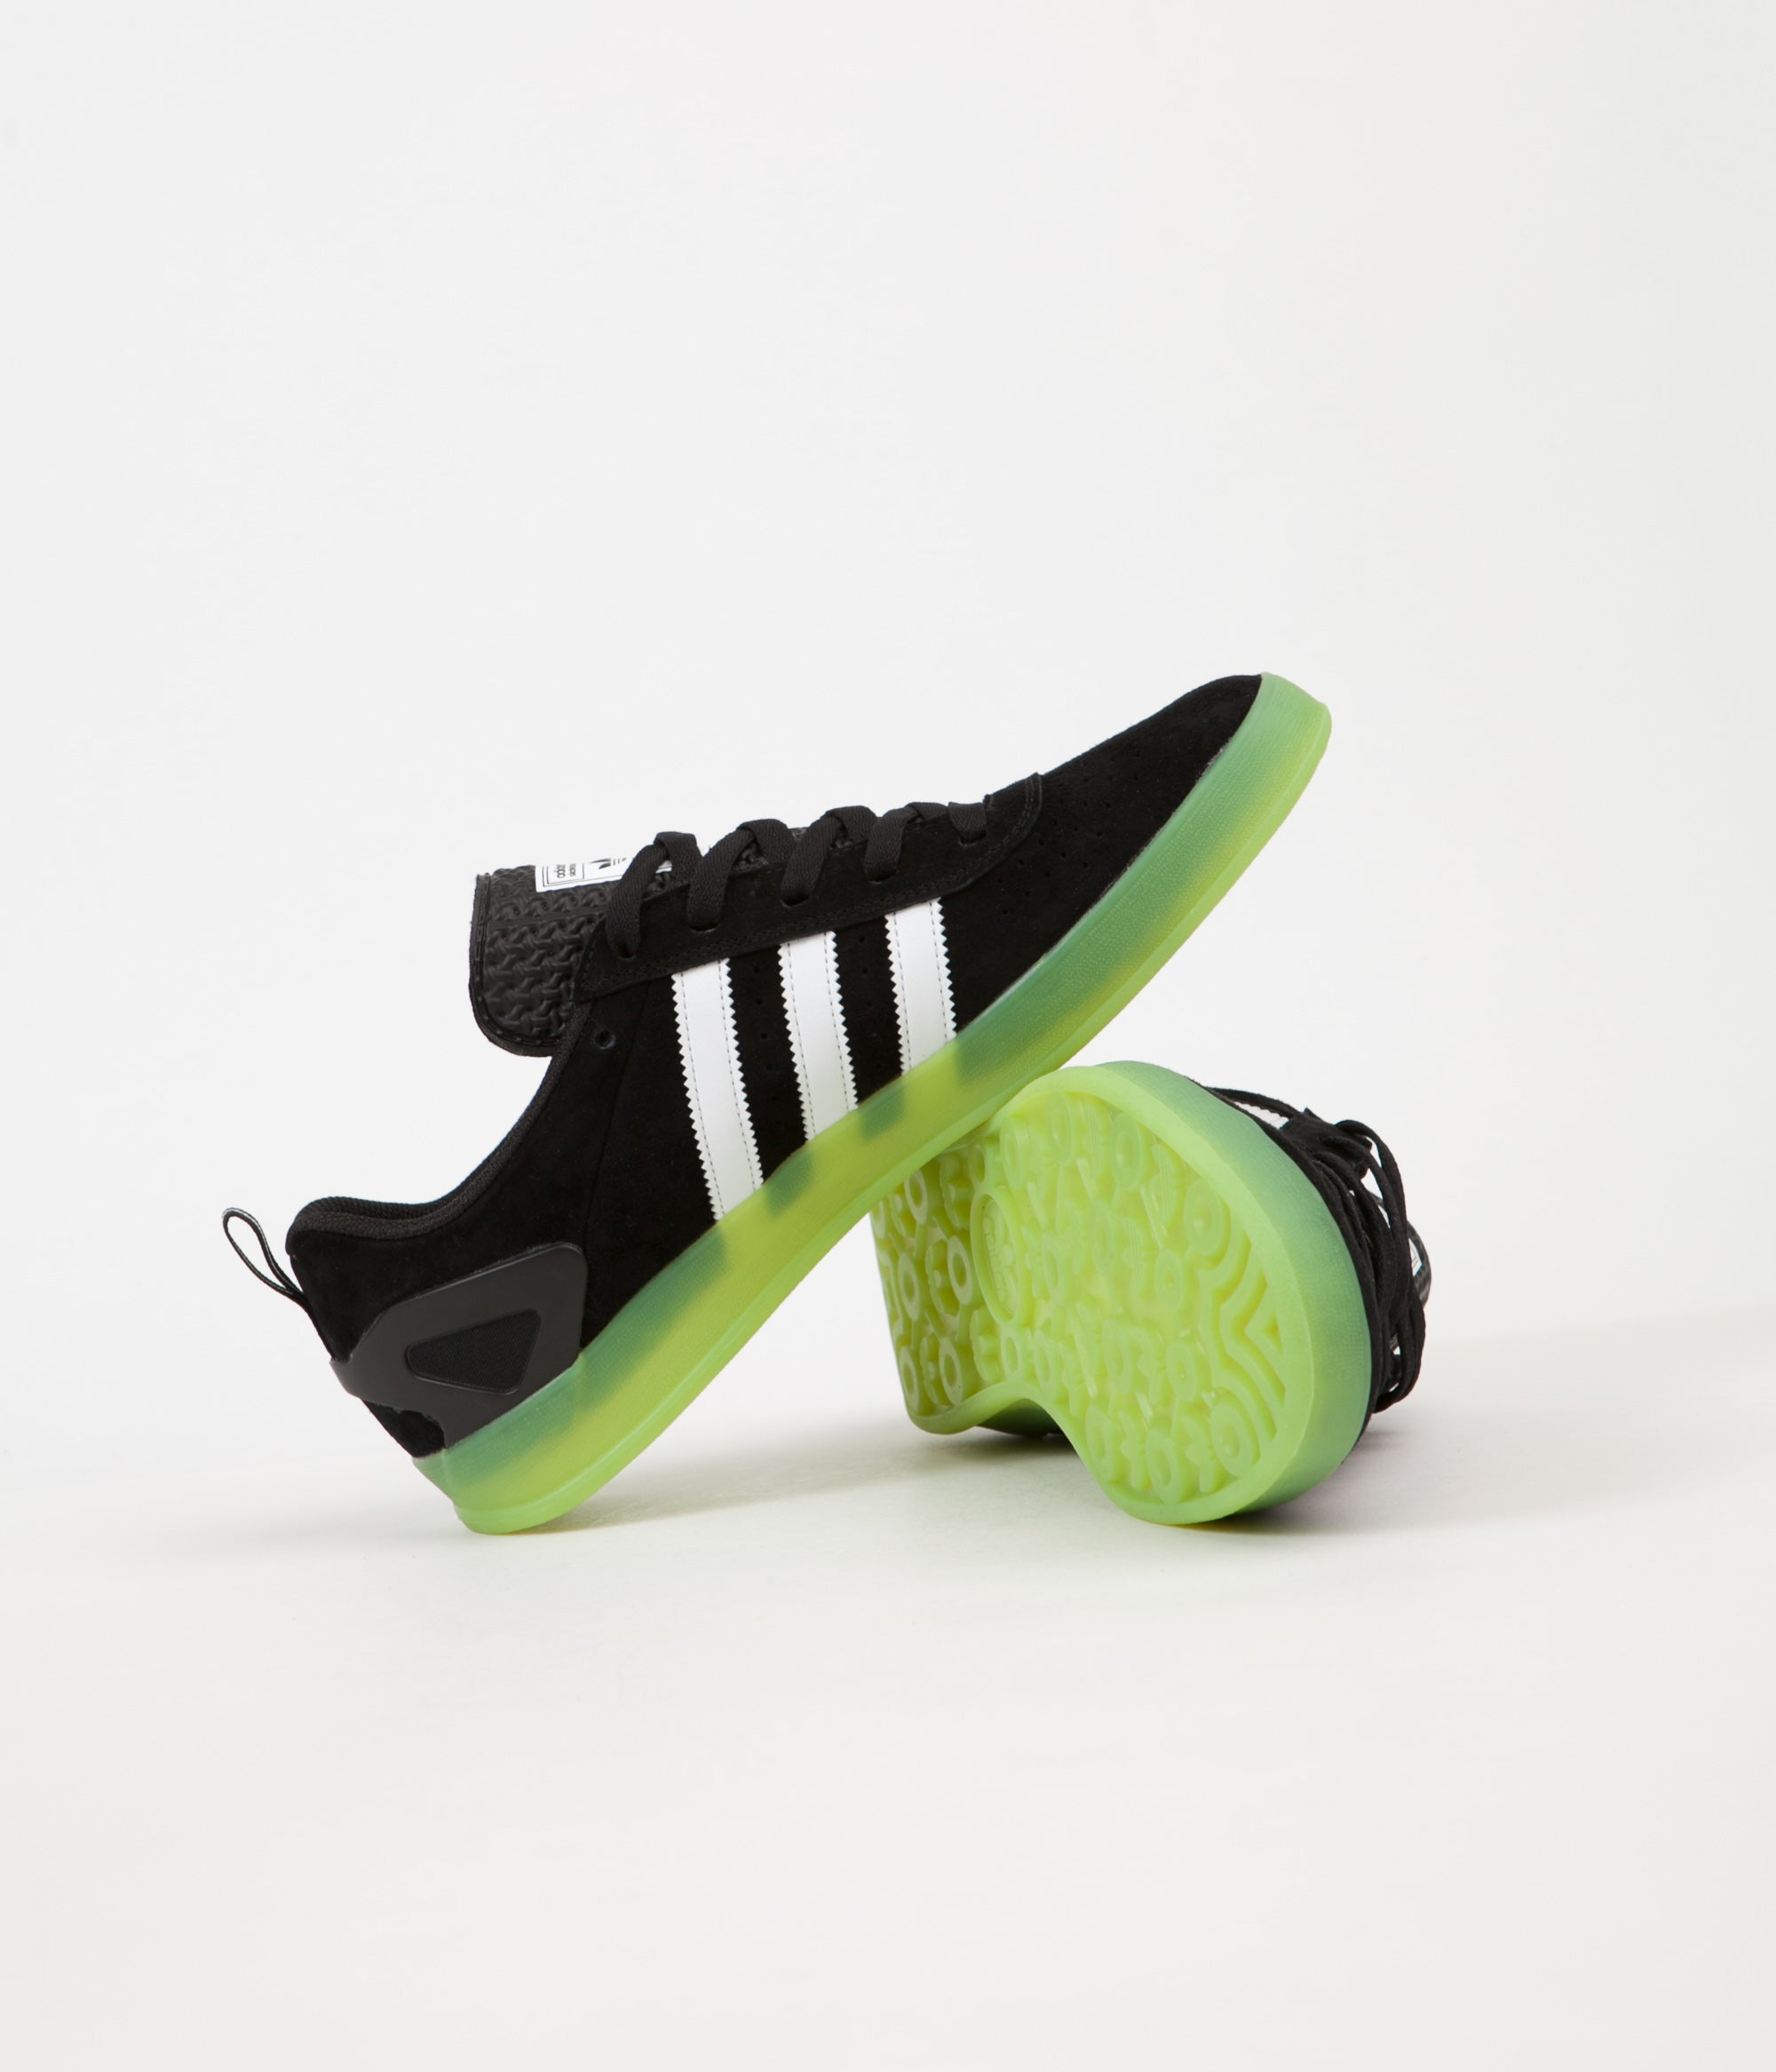 Elocuente boxeo repetición  Adidas x Palace Pro 'Chewy' Shoes - Black / White / Green | Flatspot